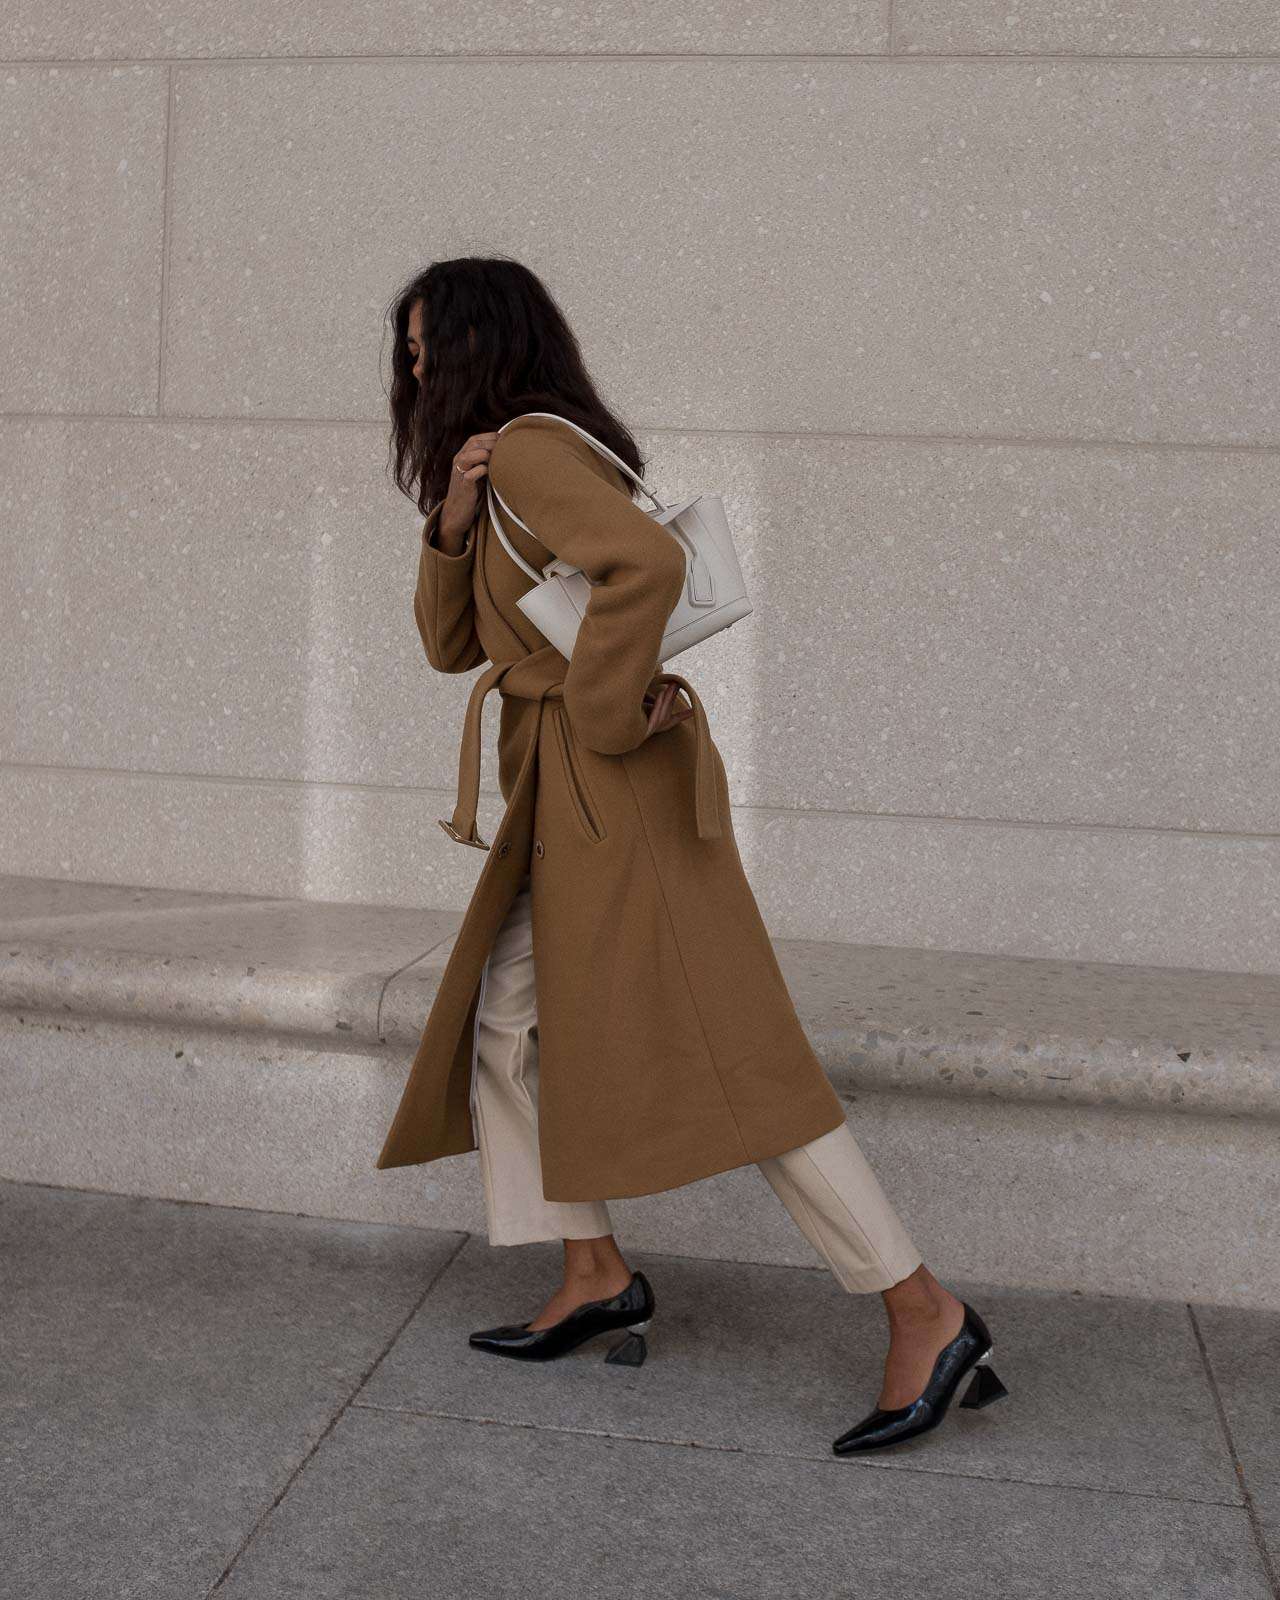 storm wears by malene birger camel coat combined with creme weekday pants and yuul yie black mules